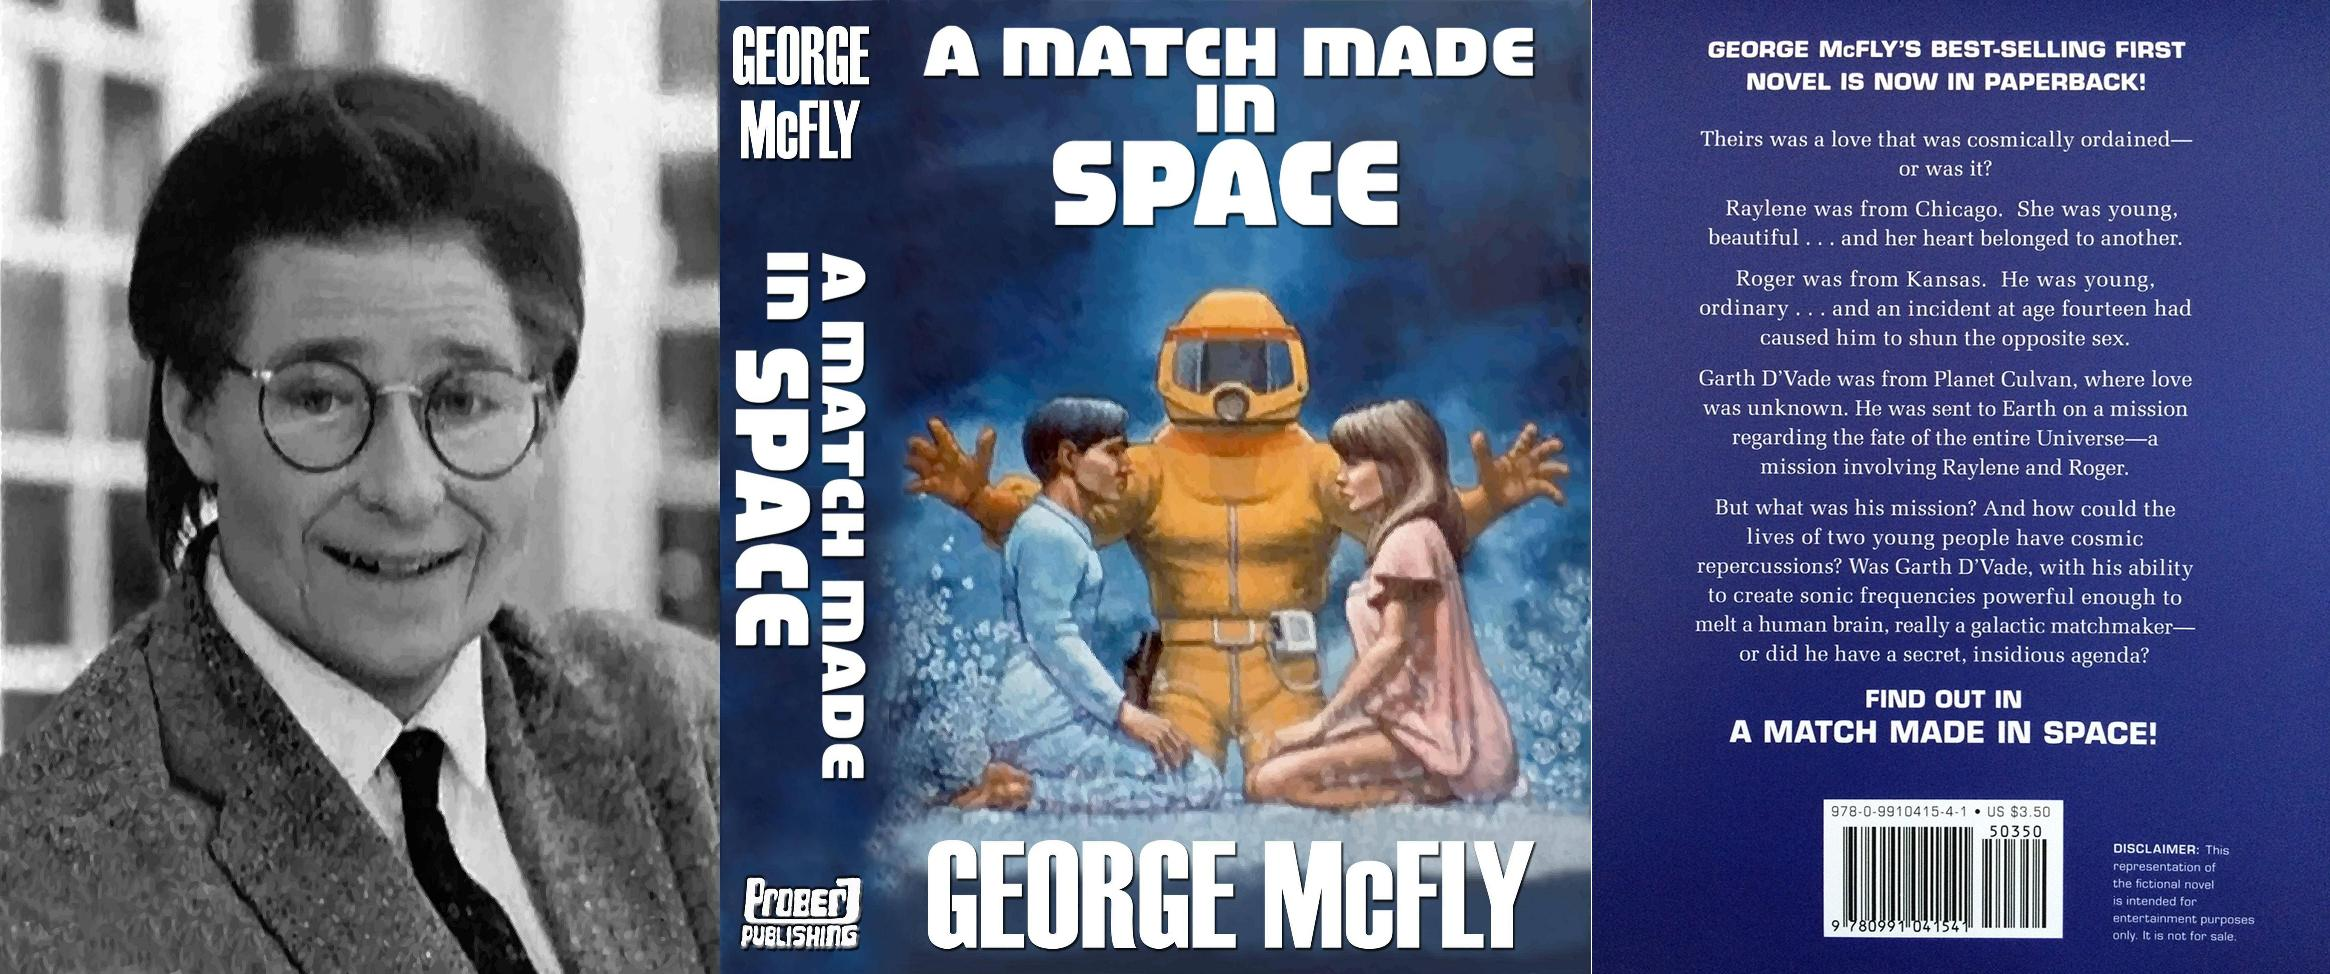 Match Made in Space